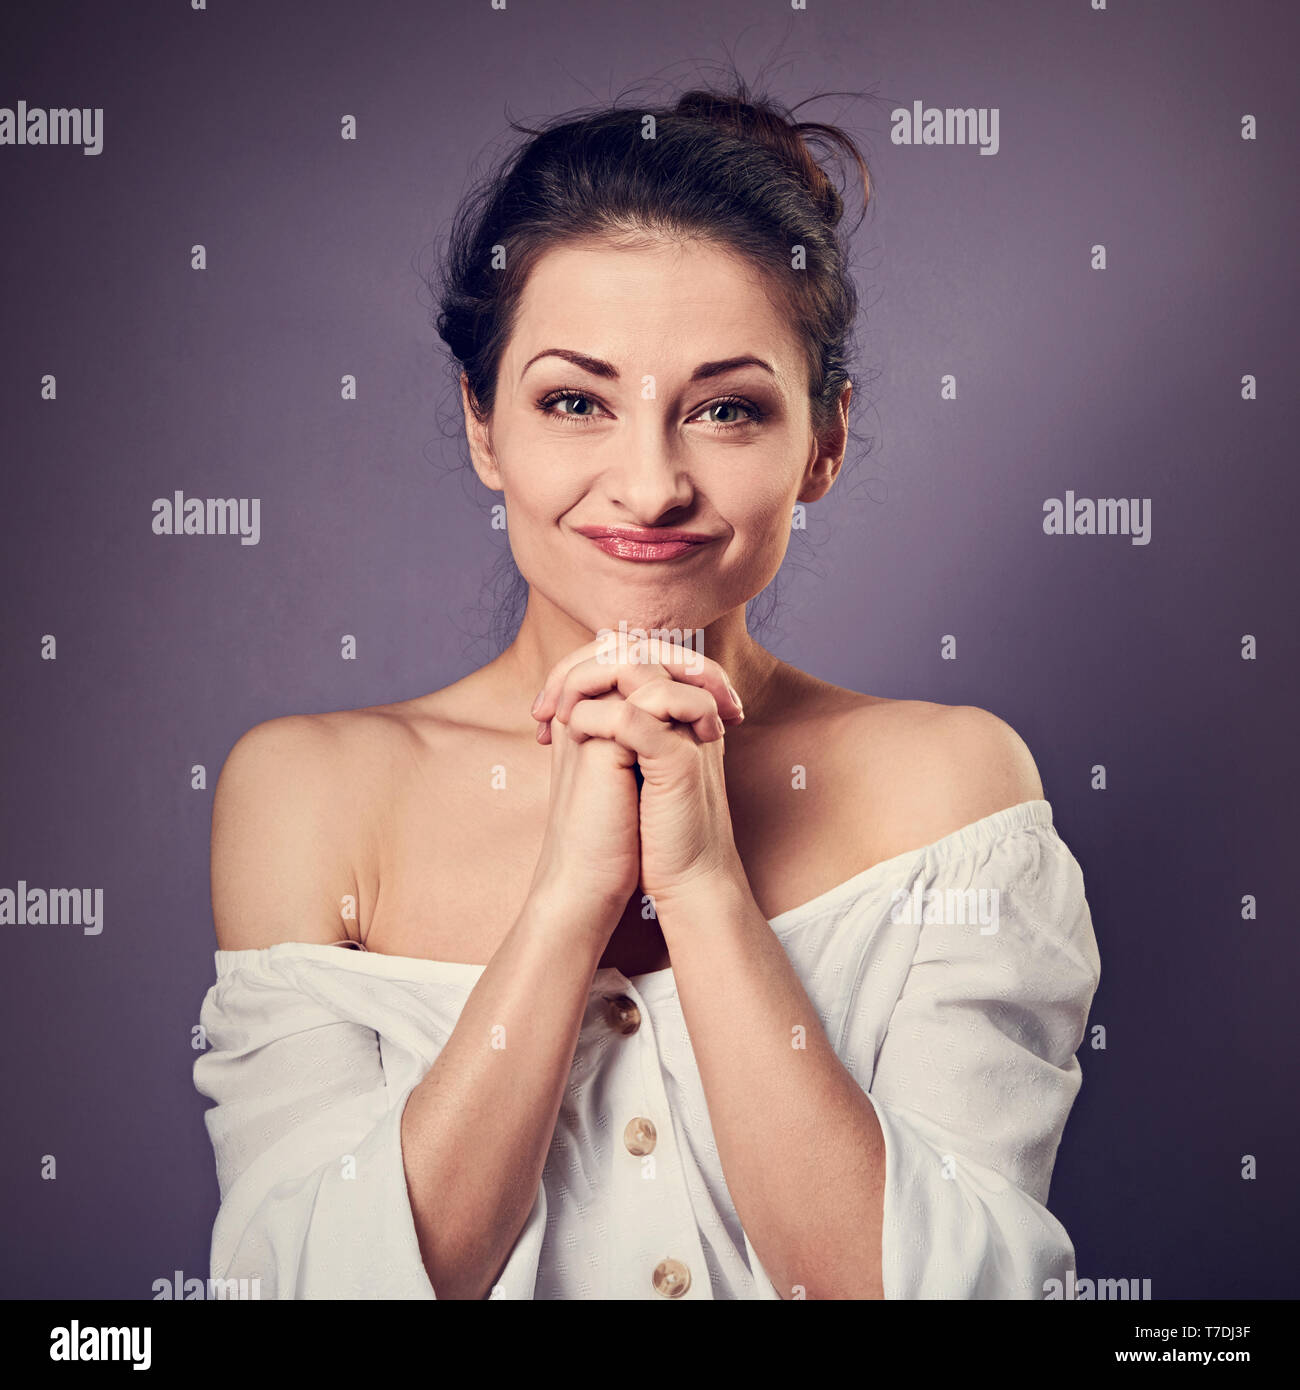 Beautiful excited fun grimacing woman in white shirt holding the hands under the face. Closeup toned portrait on empty purple copy space. - Stock Image